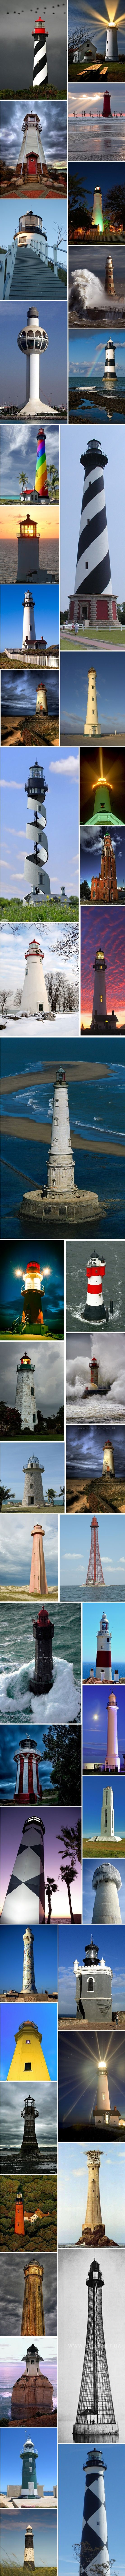 50 Amazing & Beautiful Lighthouses from Around the World www.facebook.com/loveswish